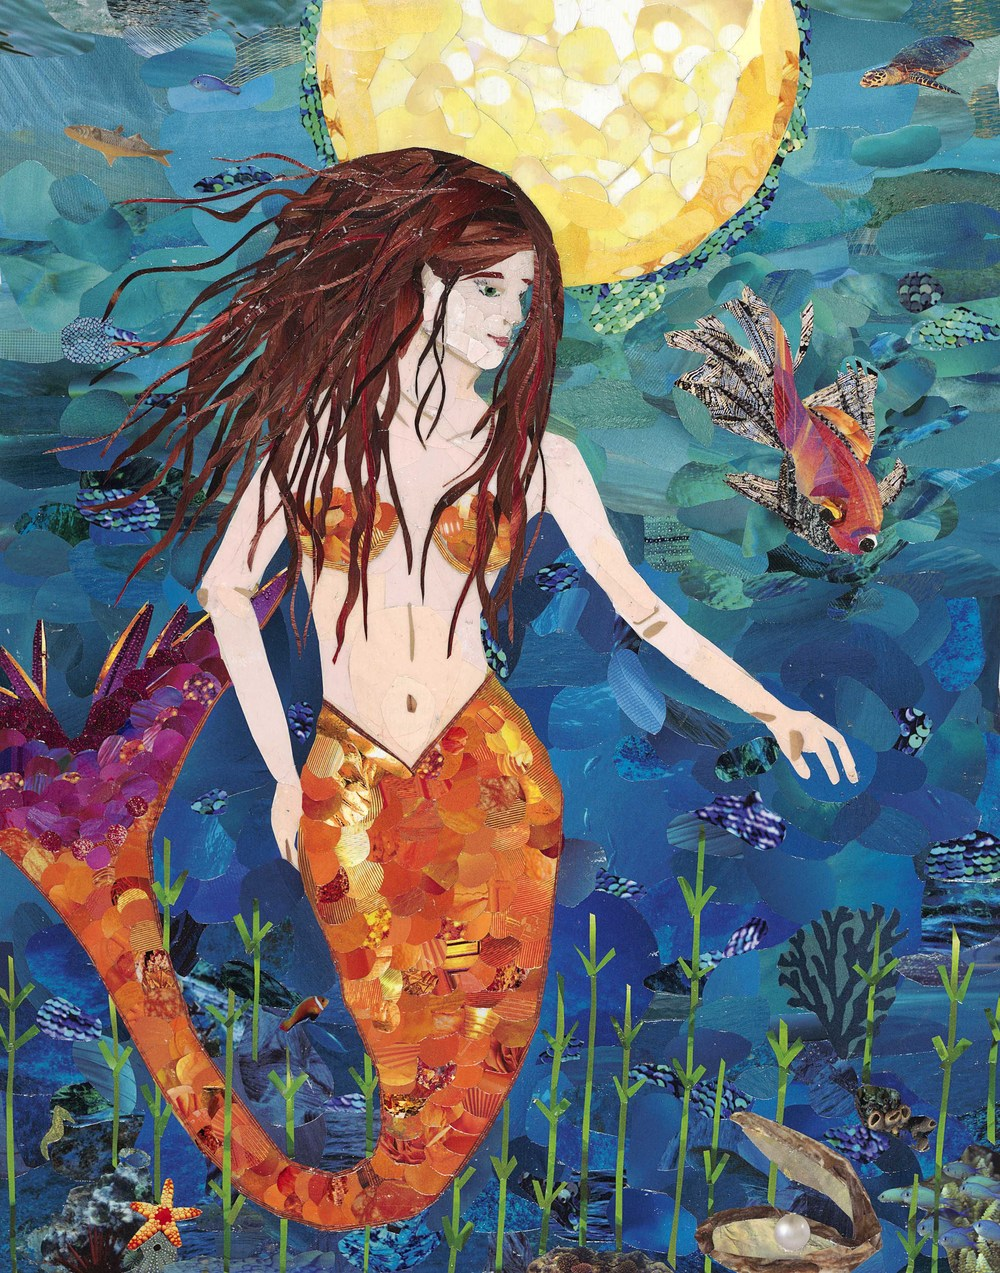 Mermaid - This 11x14 inch collage was commissioned by a client in Mississippi who loves mermaids! I sent her several google images of various mermaids to get a sense of the style and pose she wanted. Next I created a sketch and came up with a color palette for her approval. From there, she trusted me to create her special mermaid!